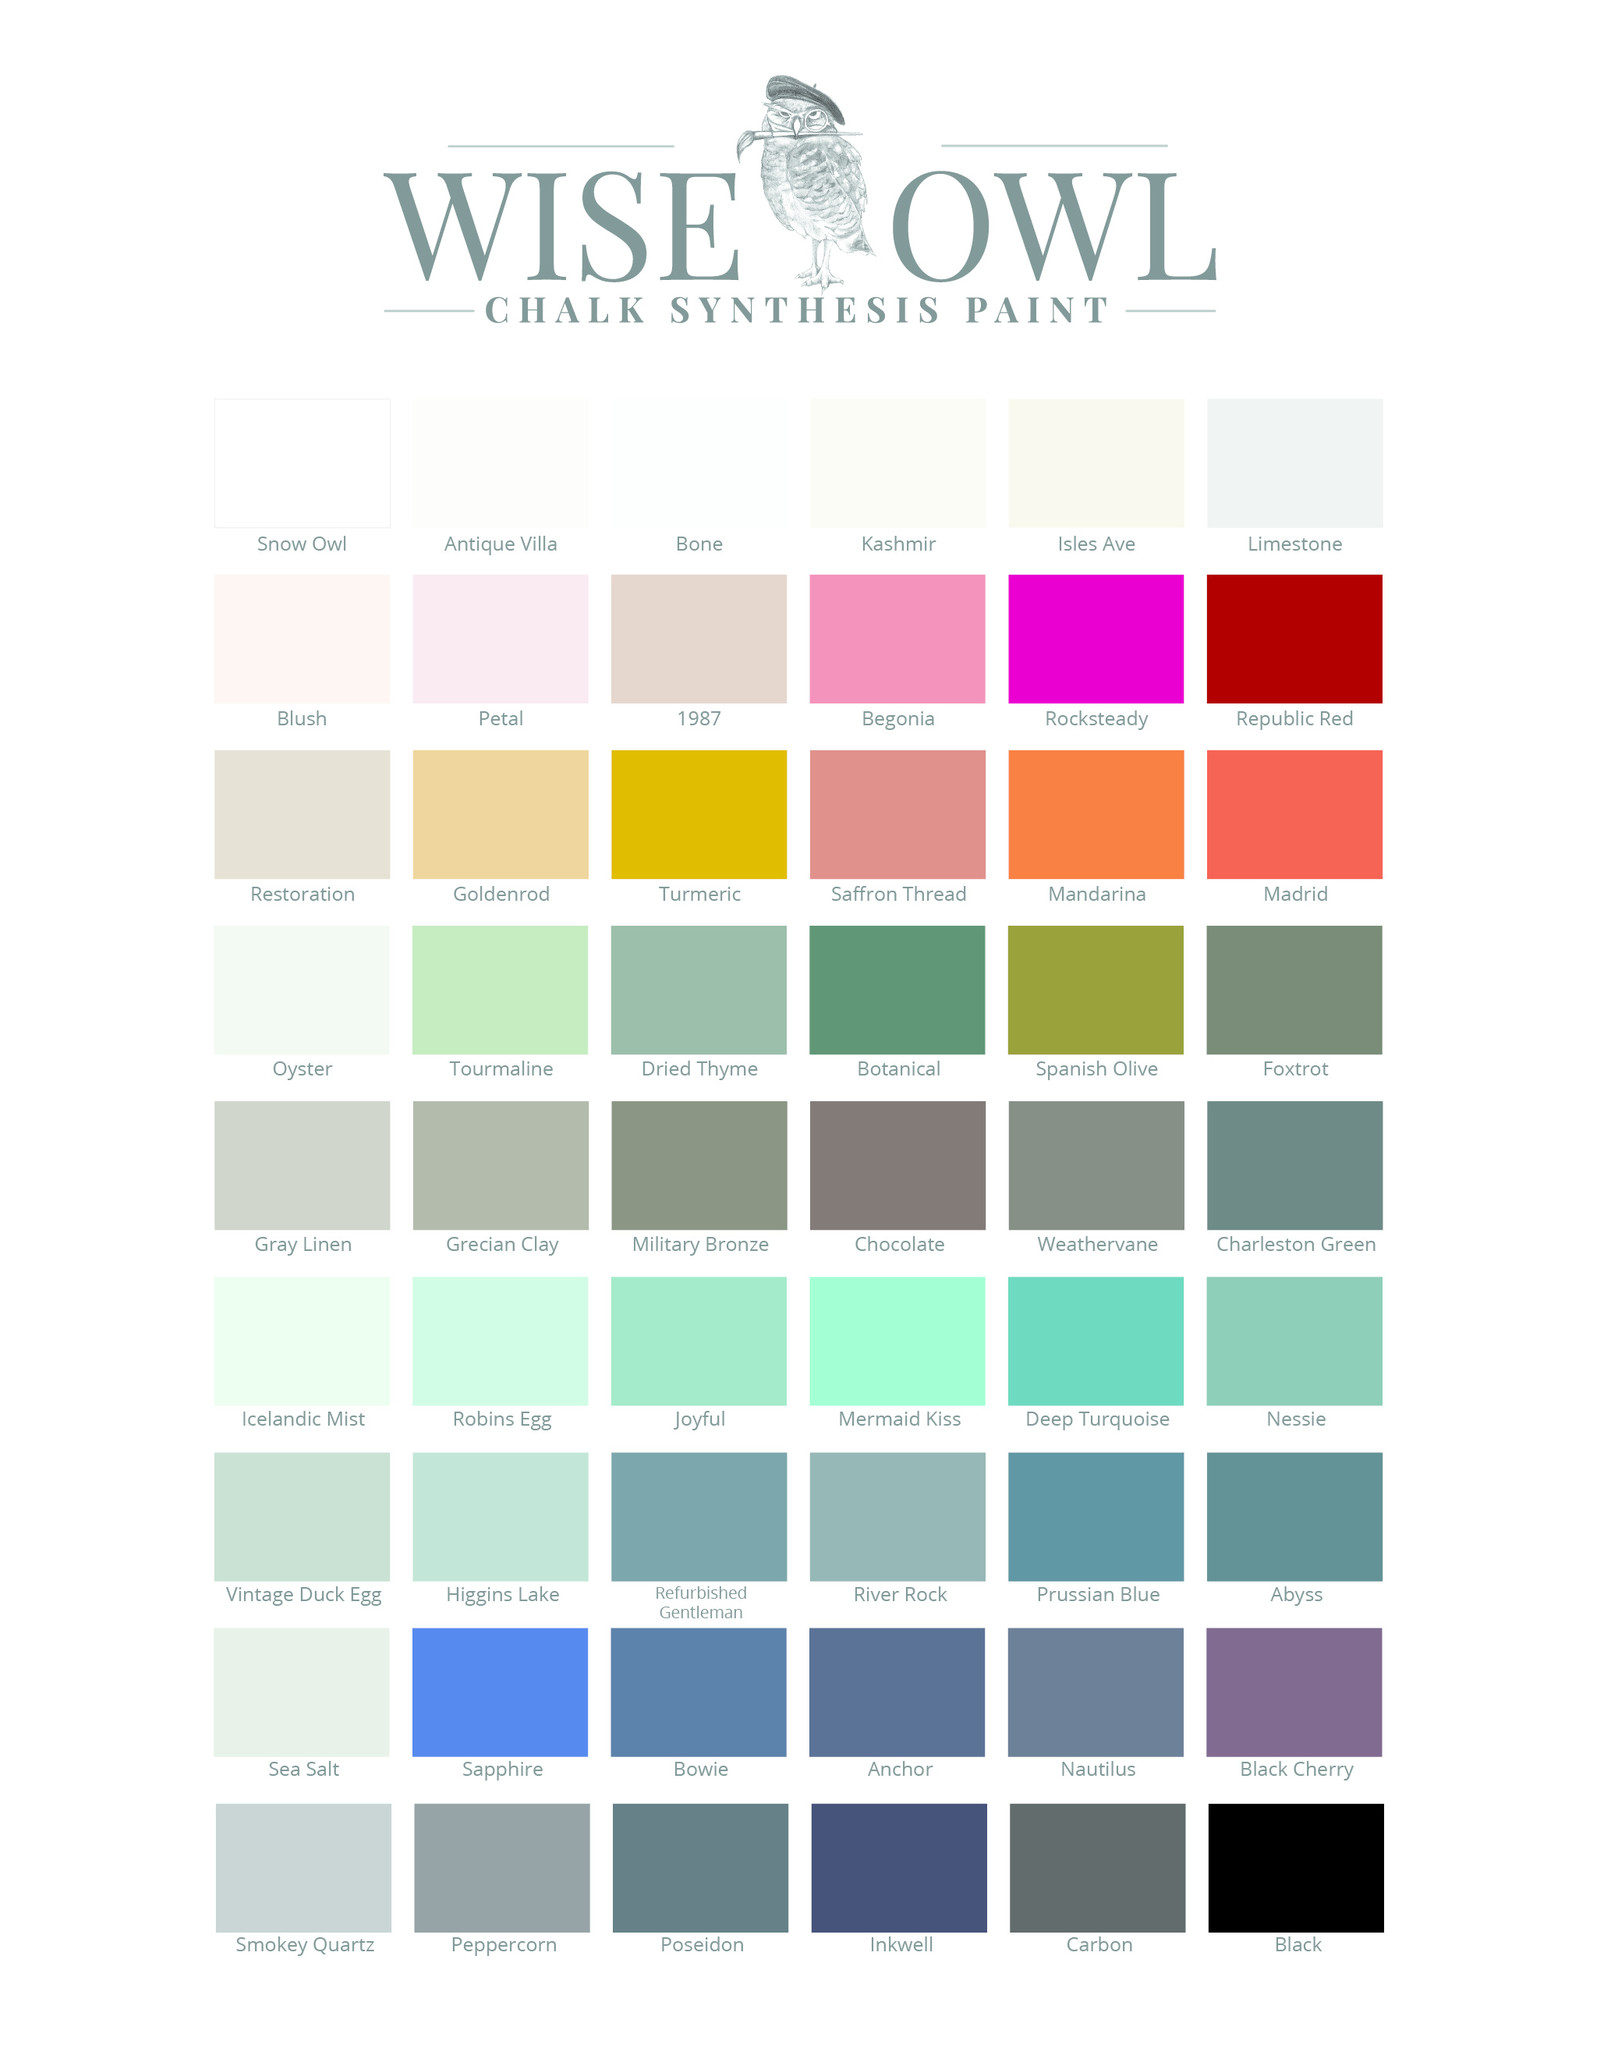 Wise Owl Paint Chalk Synthesis Paint Anchor-Pint